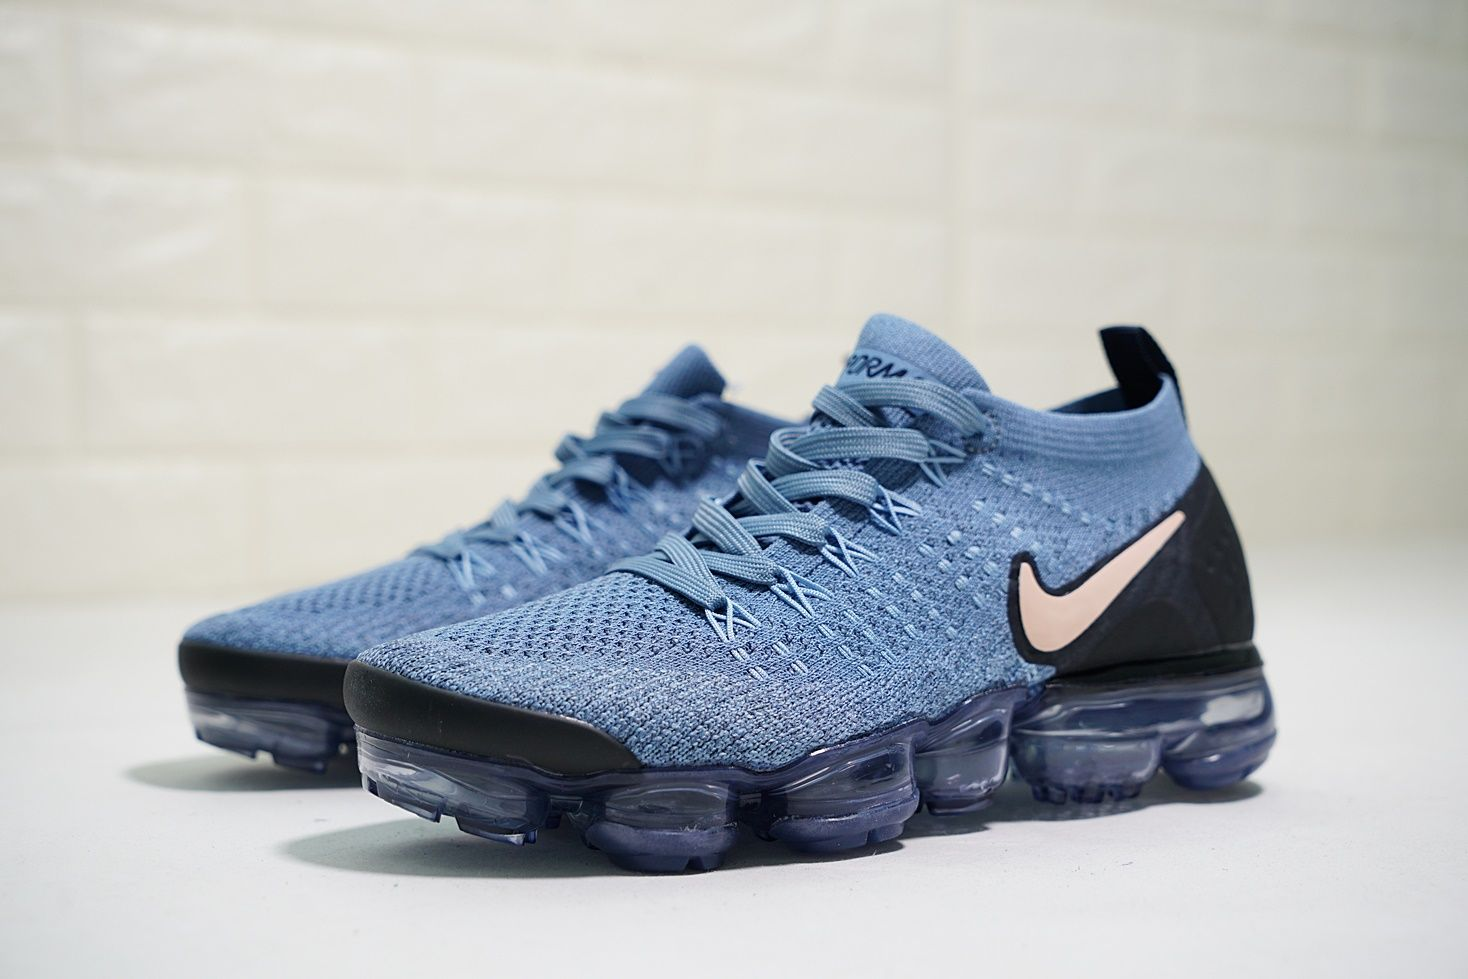 3320f536b0f8c NIKE AIR VAPORMAX FLYKNIT 2 LIGHT BLUE NUDE POWDER 942843 401 ...